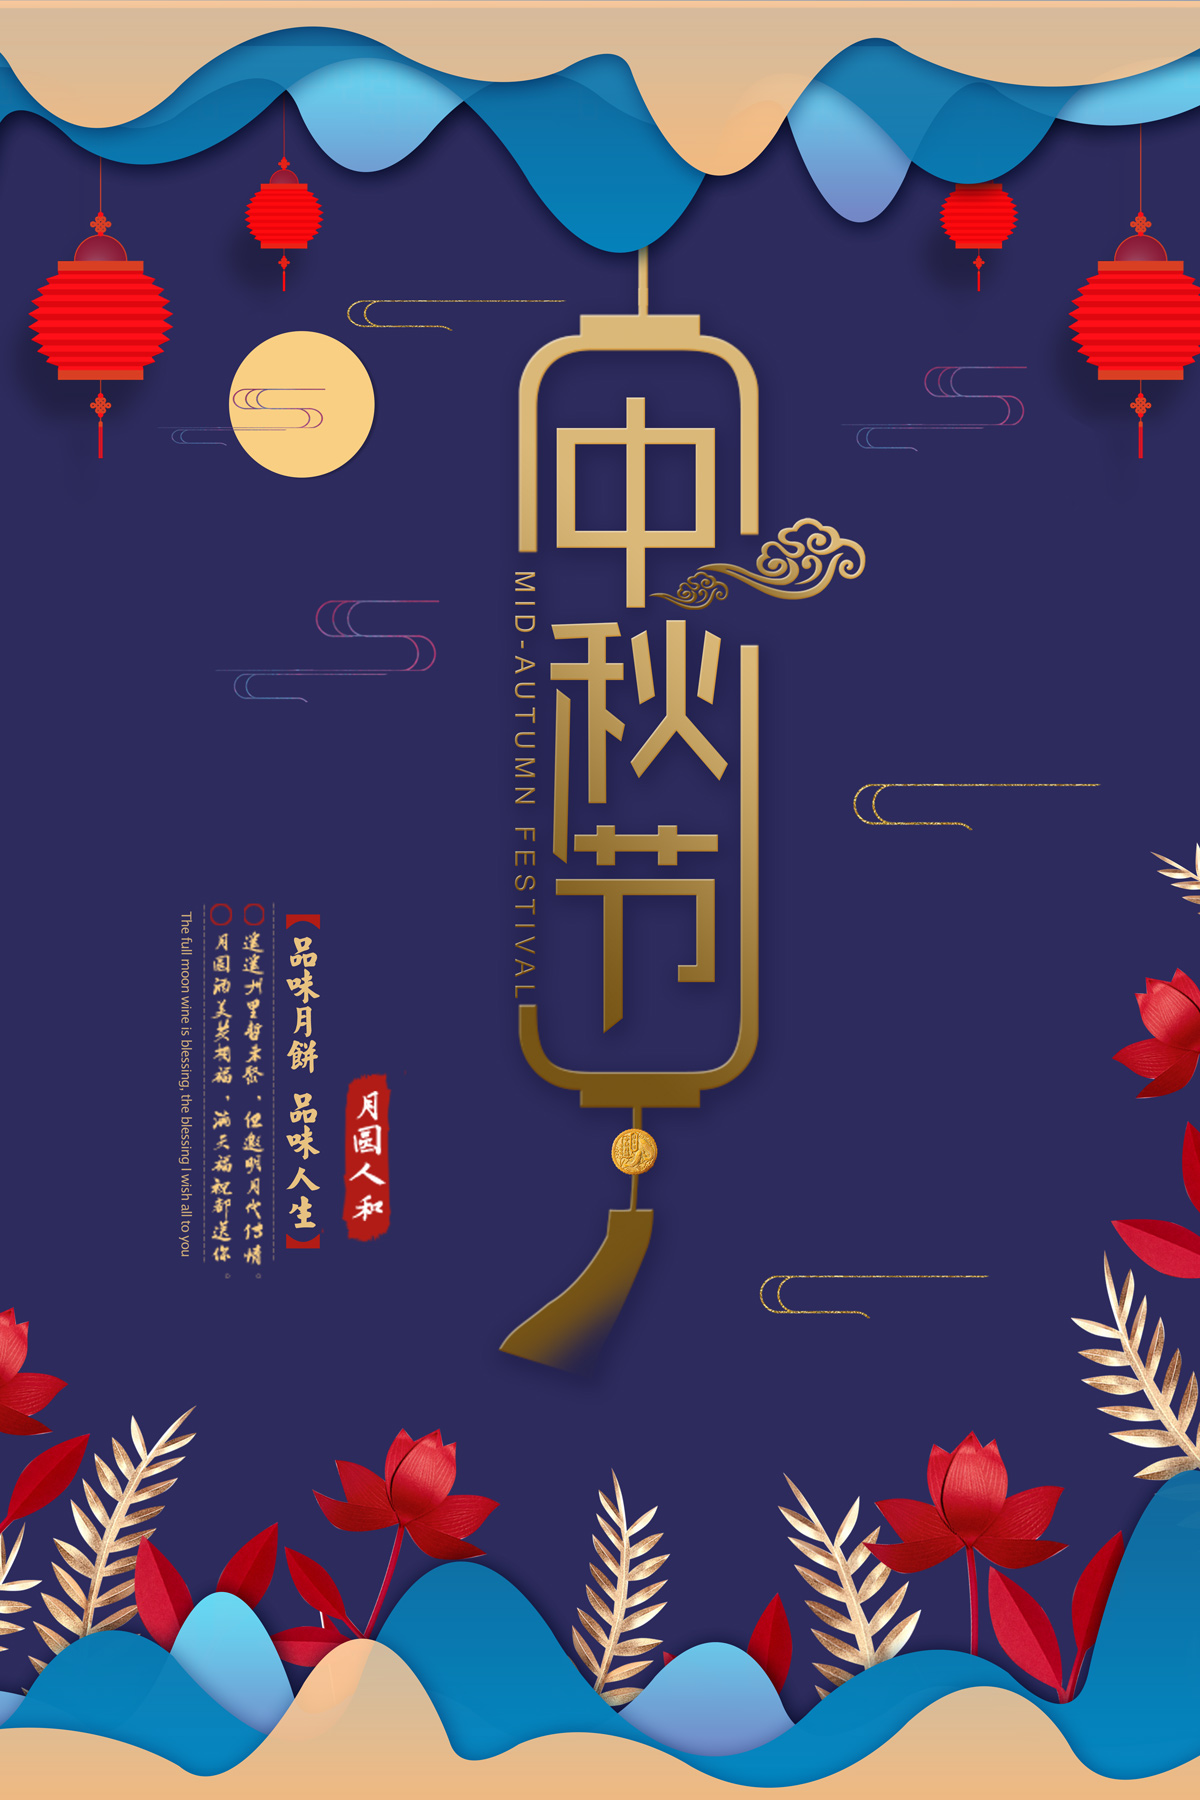 chinesefontdesign.com 2017 09 21 11 57 58 830239 Mid Autumn Festival art posters PSD File Free Download Mid Autumn Festival psd